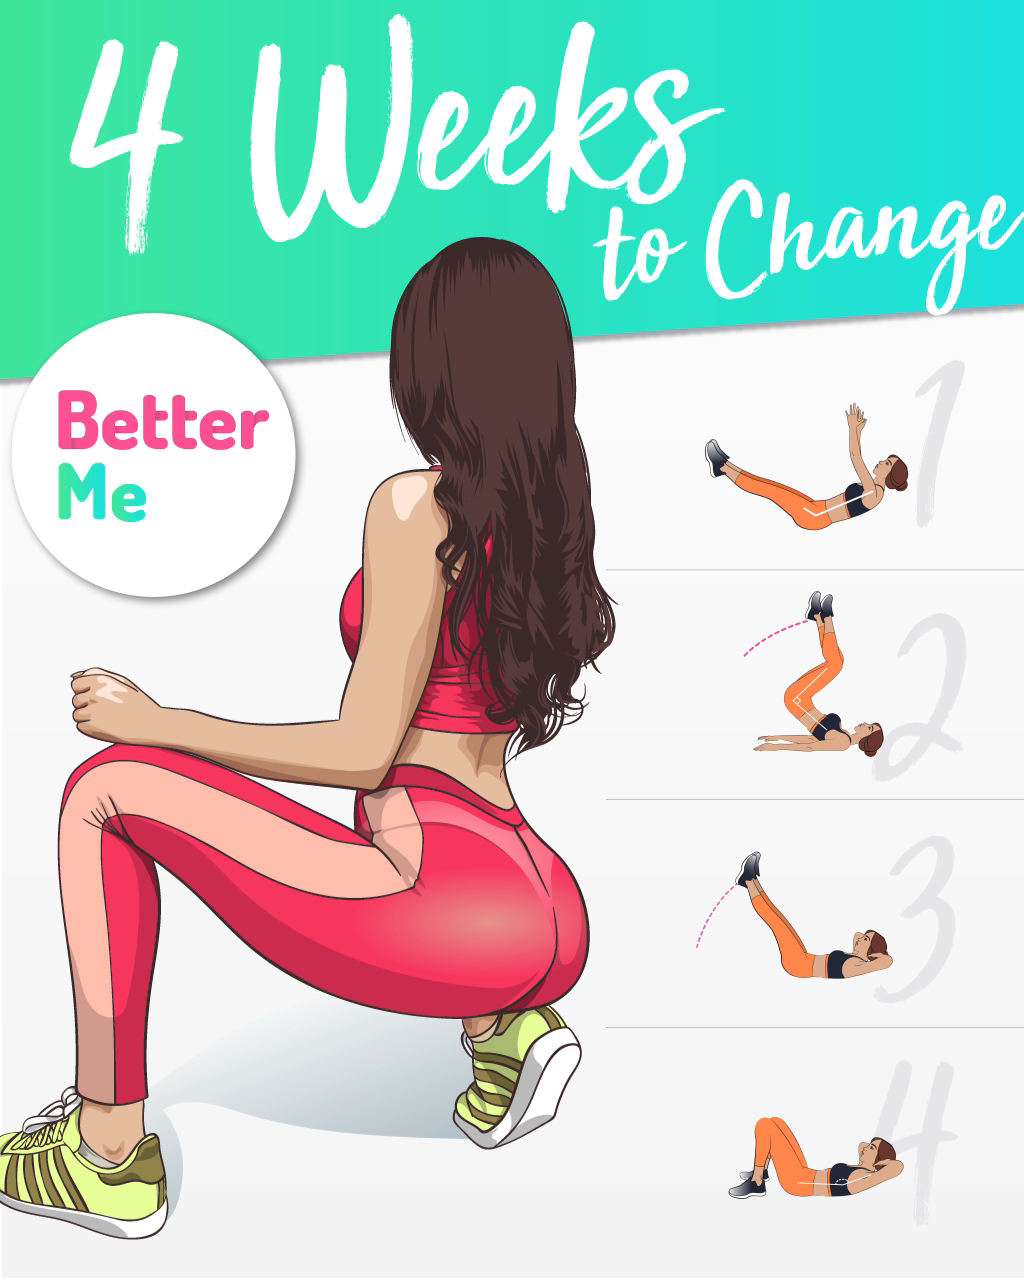 Latest Funny Clean Only 4 Weeks to Have an Incredible Lifted Body You need only 4 weeks to become slimmer!!! Easy workout to change the body in 1 month!!! It could help you to get rid of problem zones and prepare the body to summer!!! Try and enjoy the results!!! #fatburn #burnfat #gym #athomeworkouts #exercises #weightlosstransformation #exercise #exercisefitness #weightloss #health #fitness #loseweight #workout 11